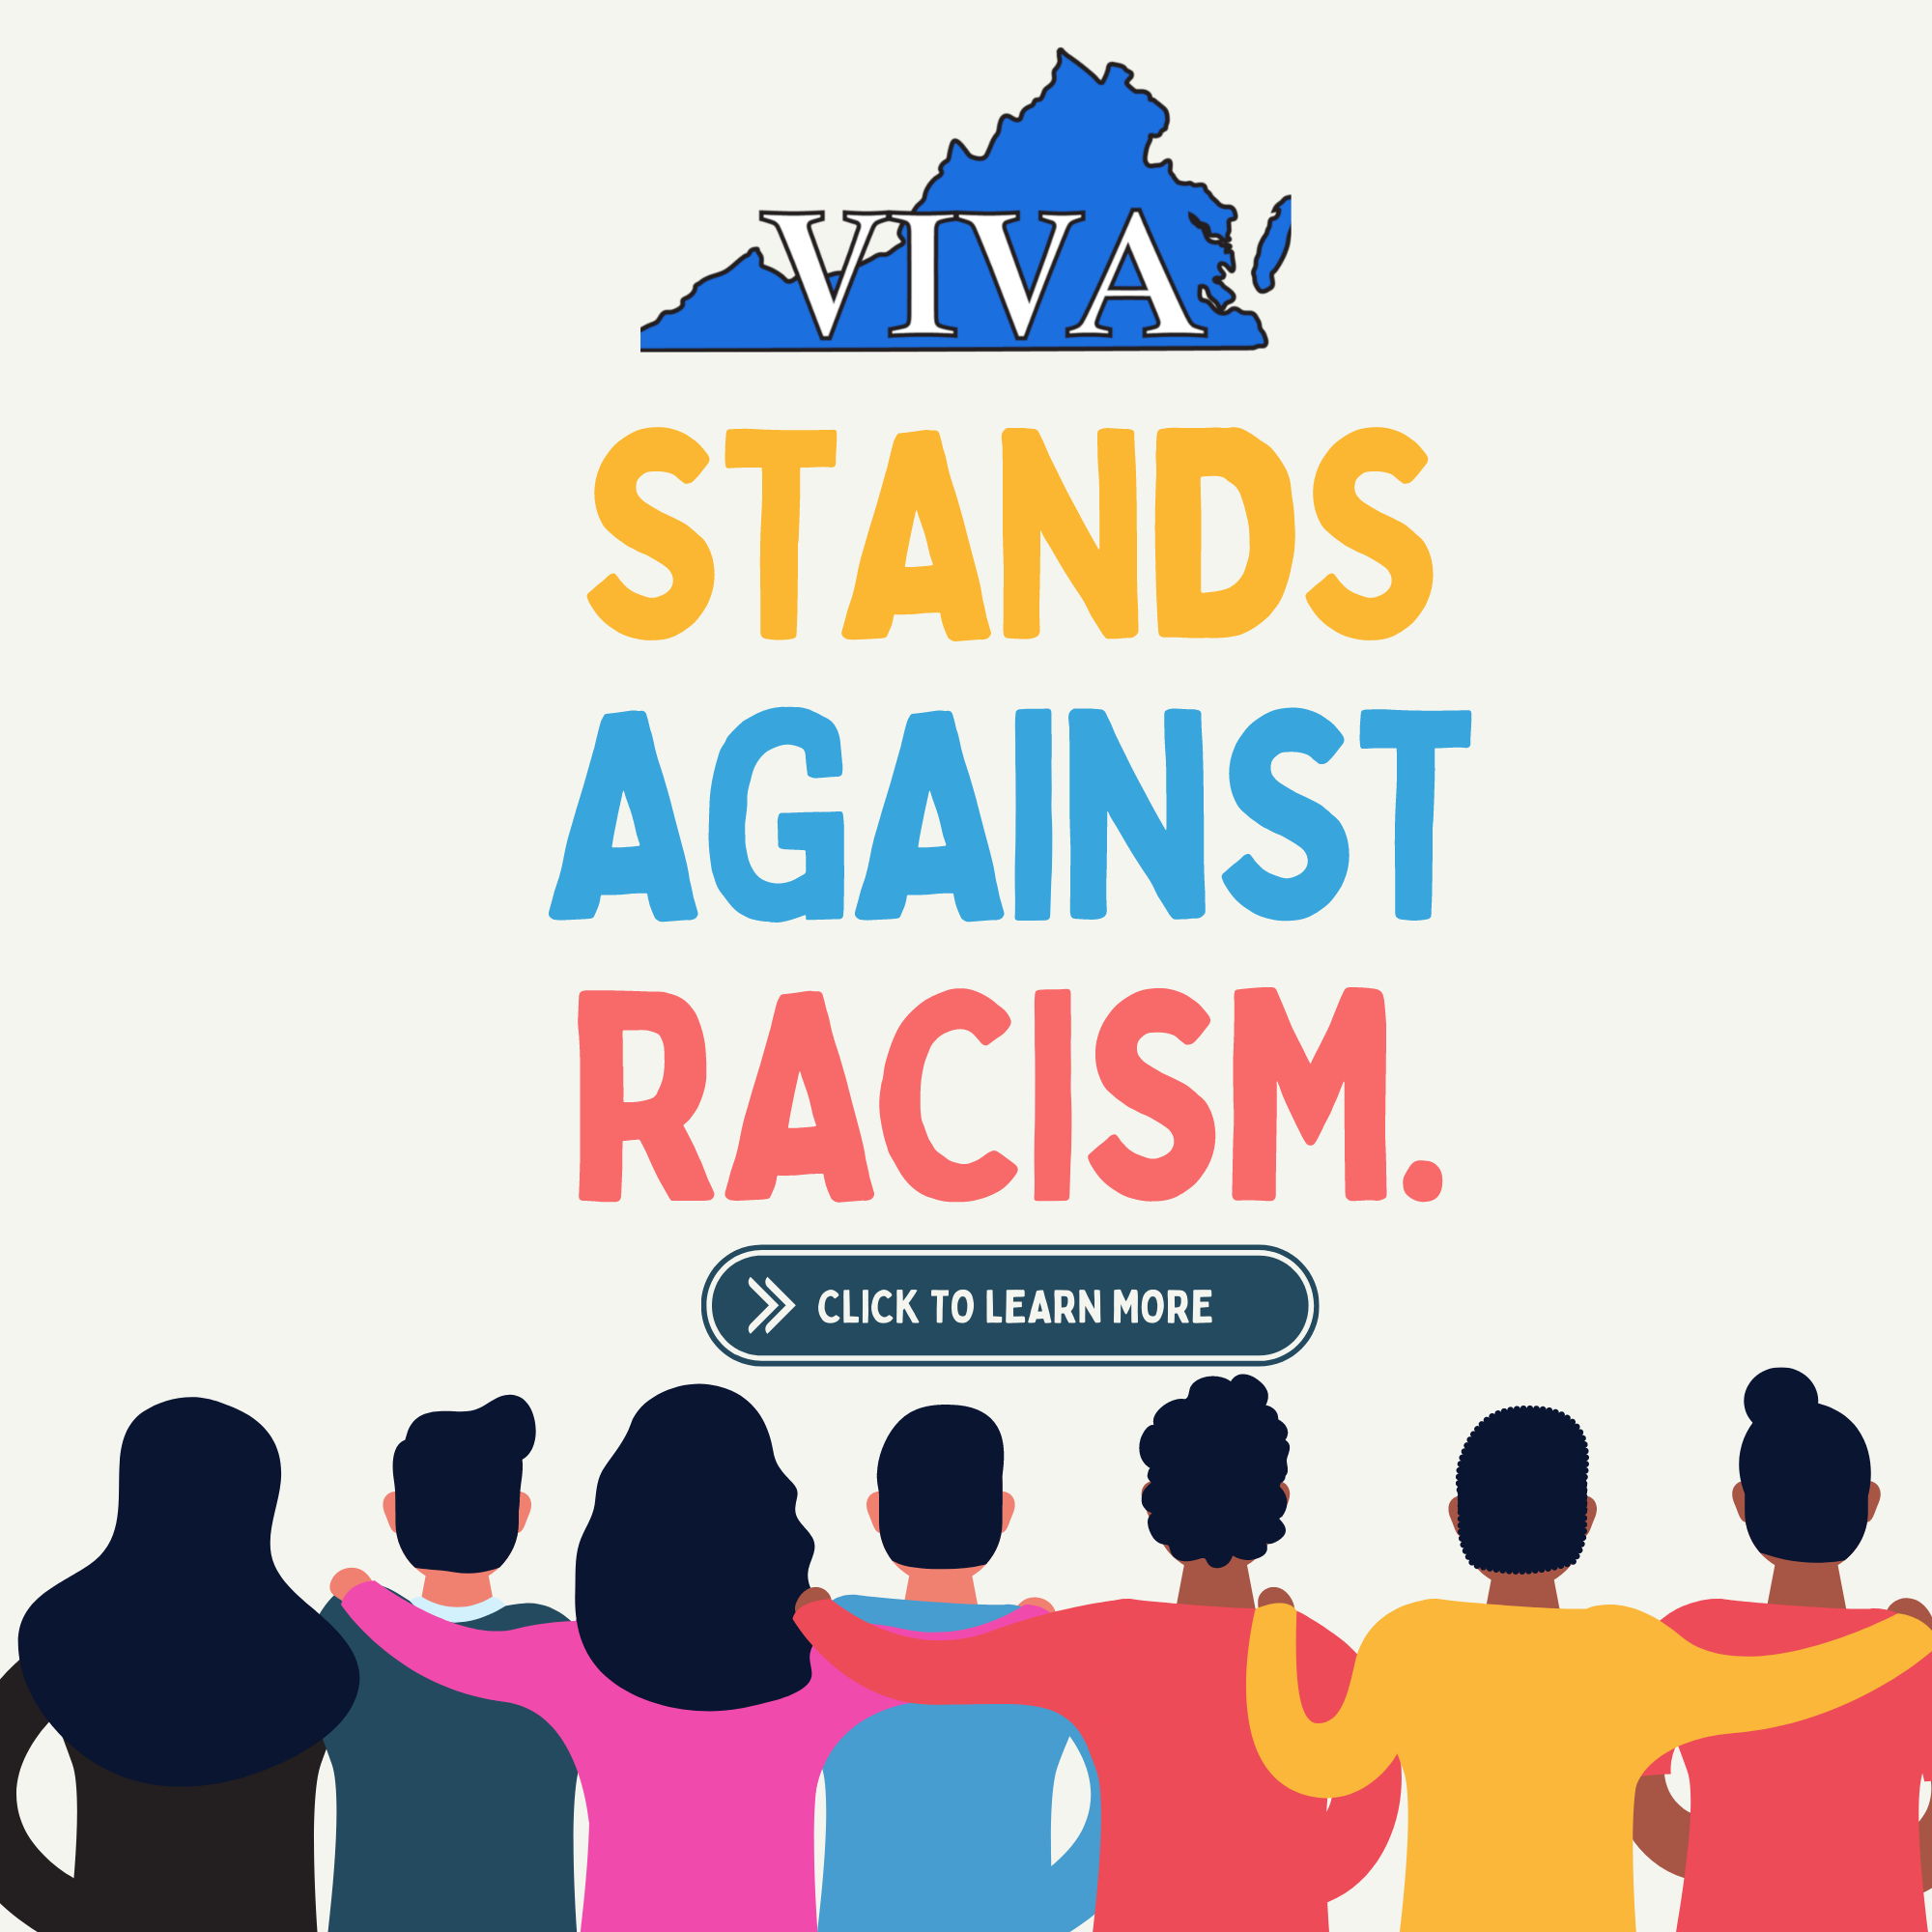 VIVA Stands Against Racism